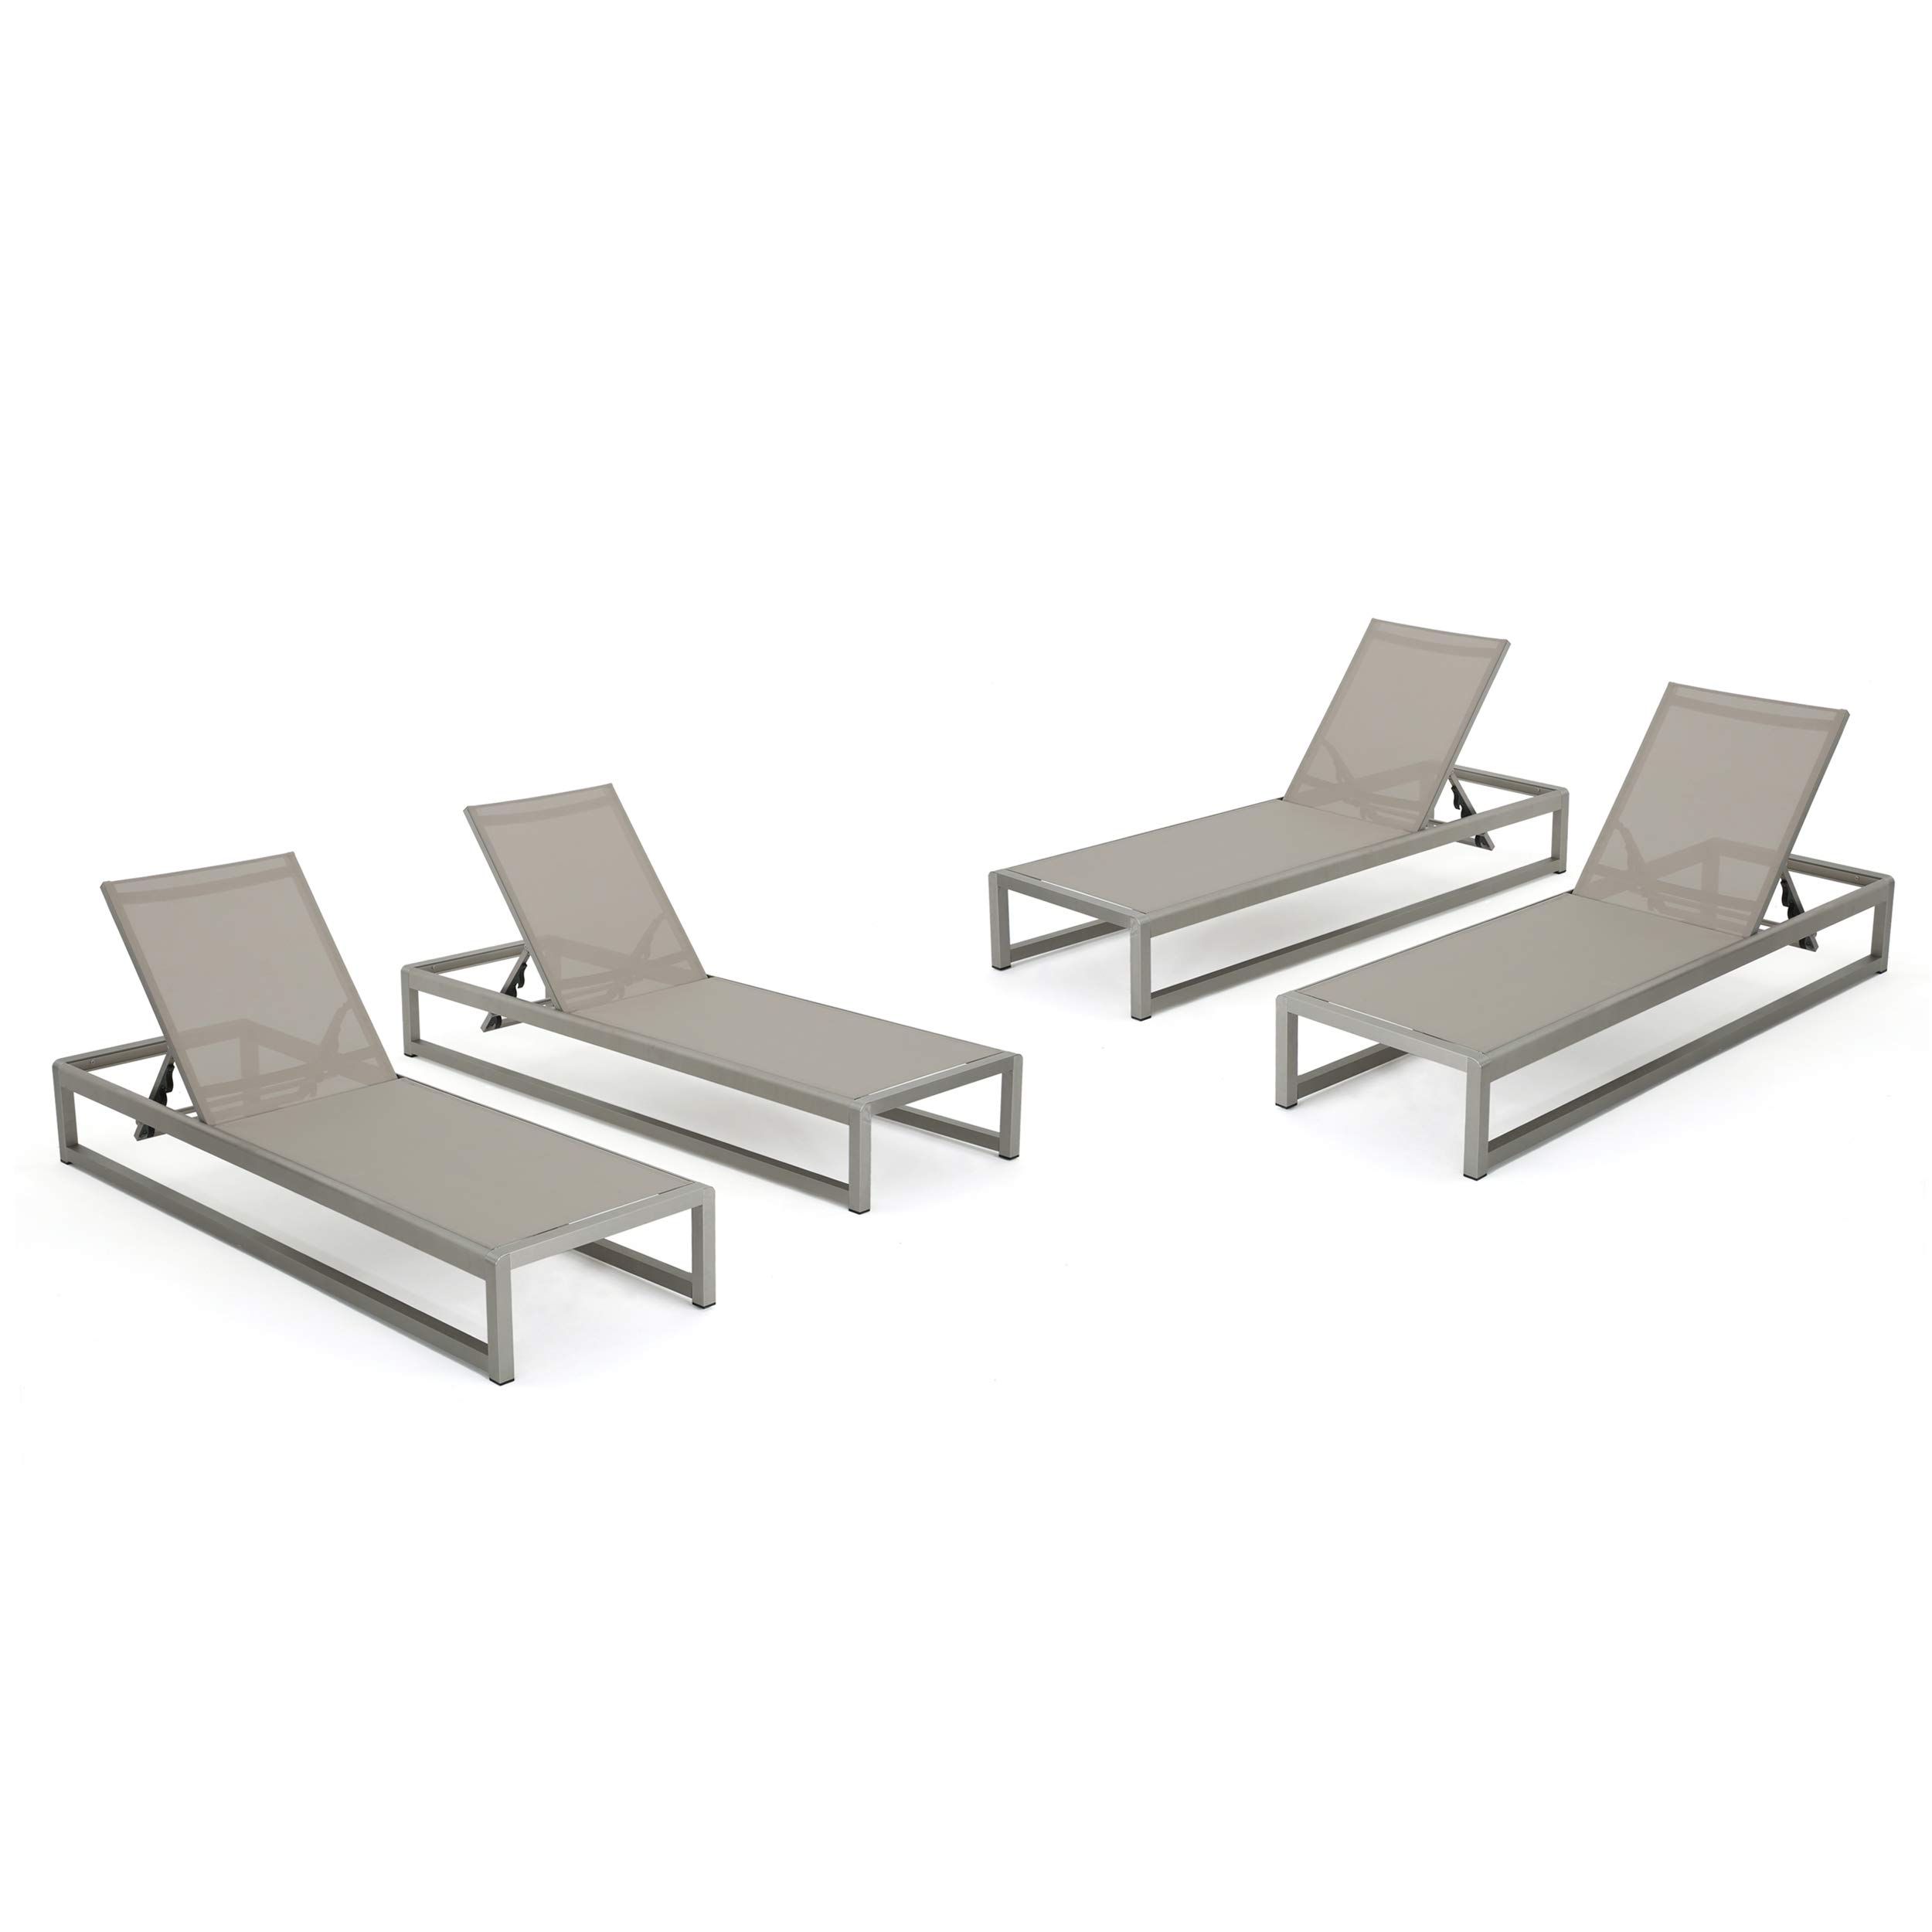 San LuisOutdoor Grey Mesh Chaise Lounge with Silver Finished Aluminum Frame (Set of 4)